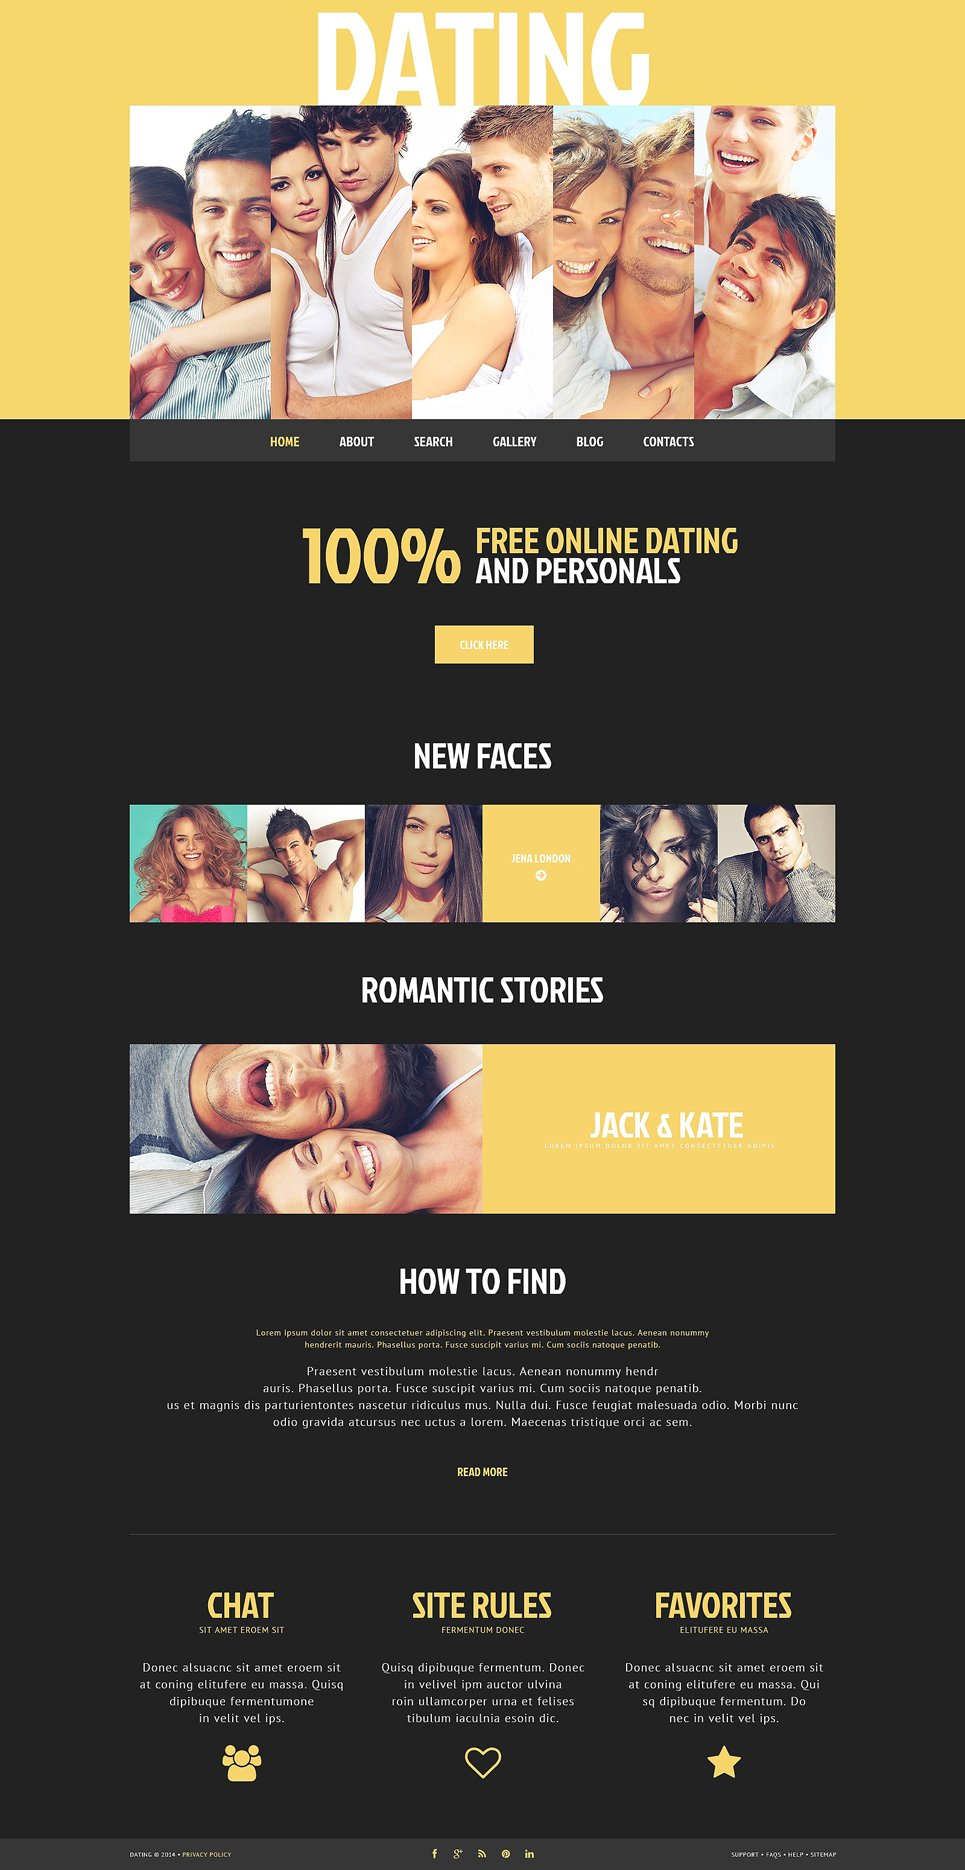 Dating site web design